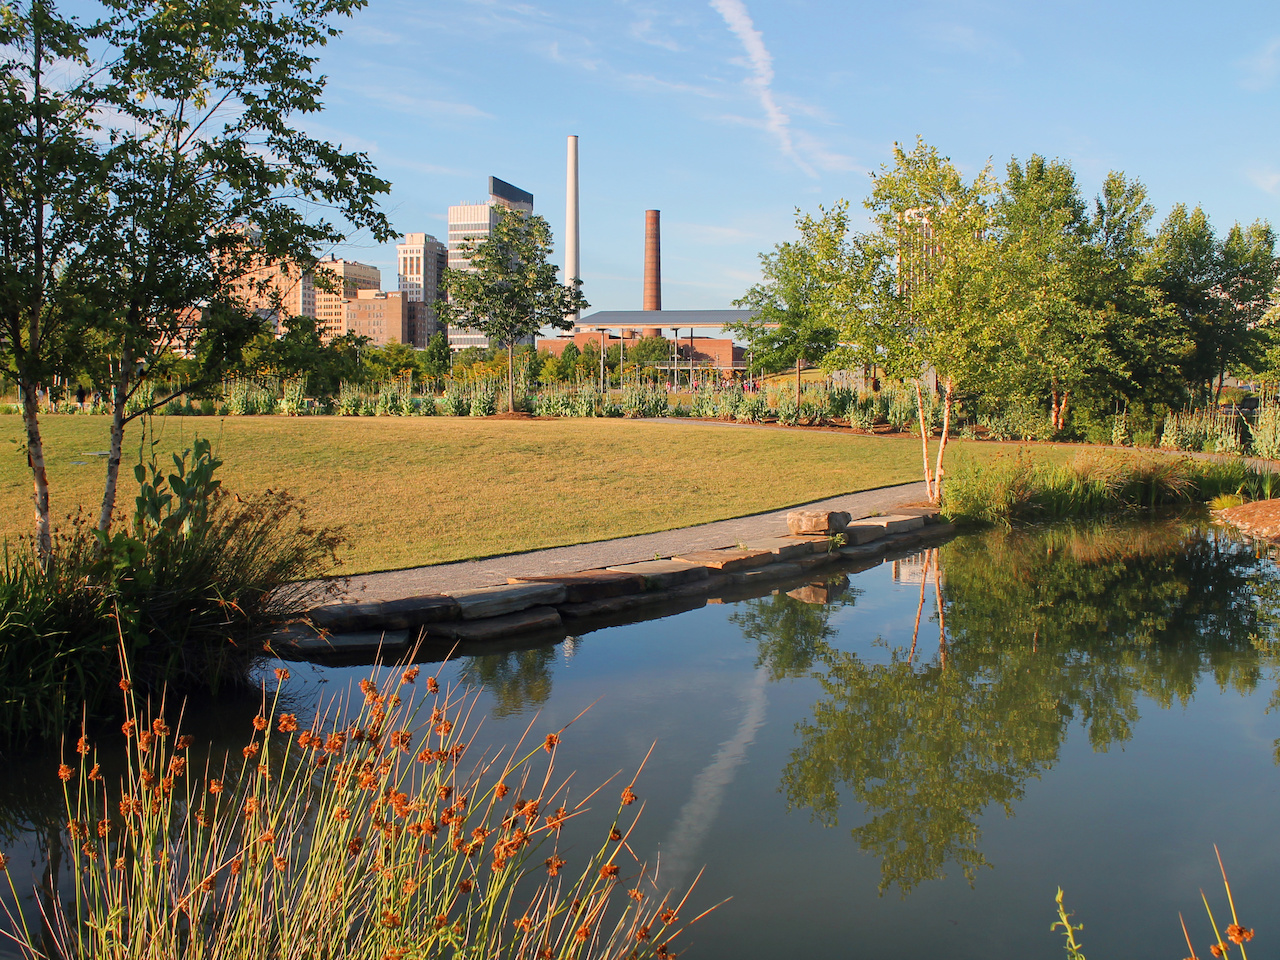 A tranquil scene at Railroad Park on a sunny afternoon